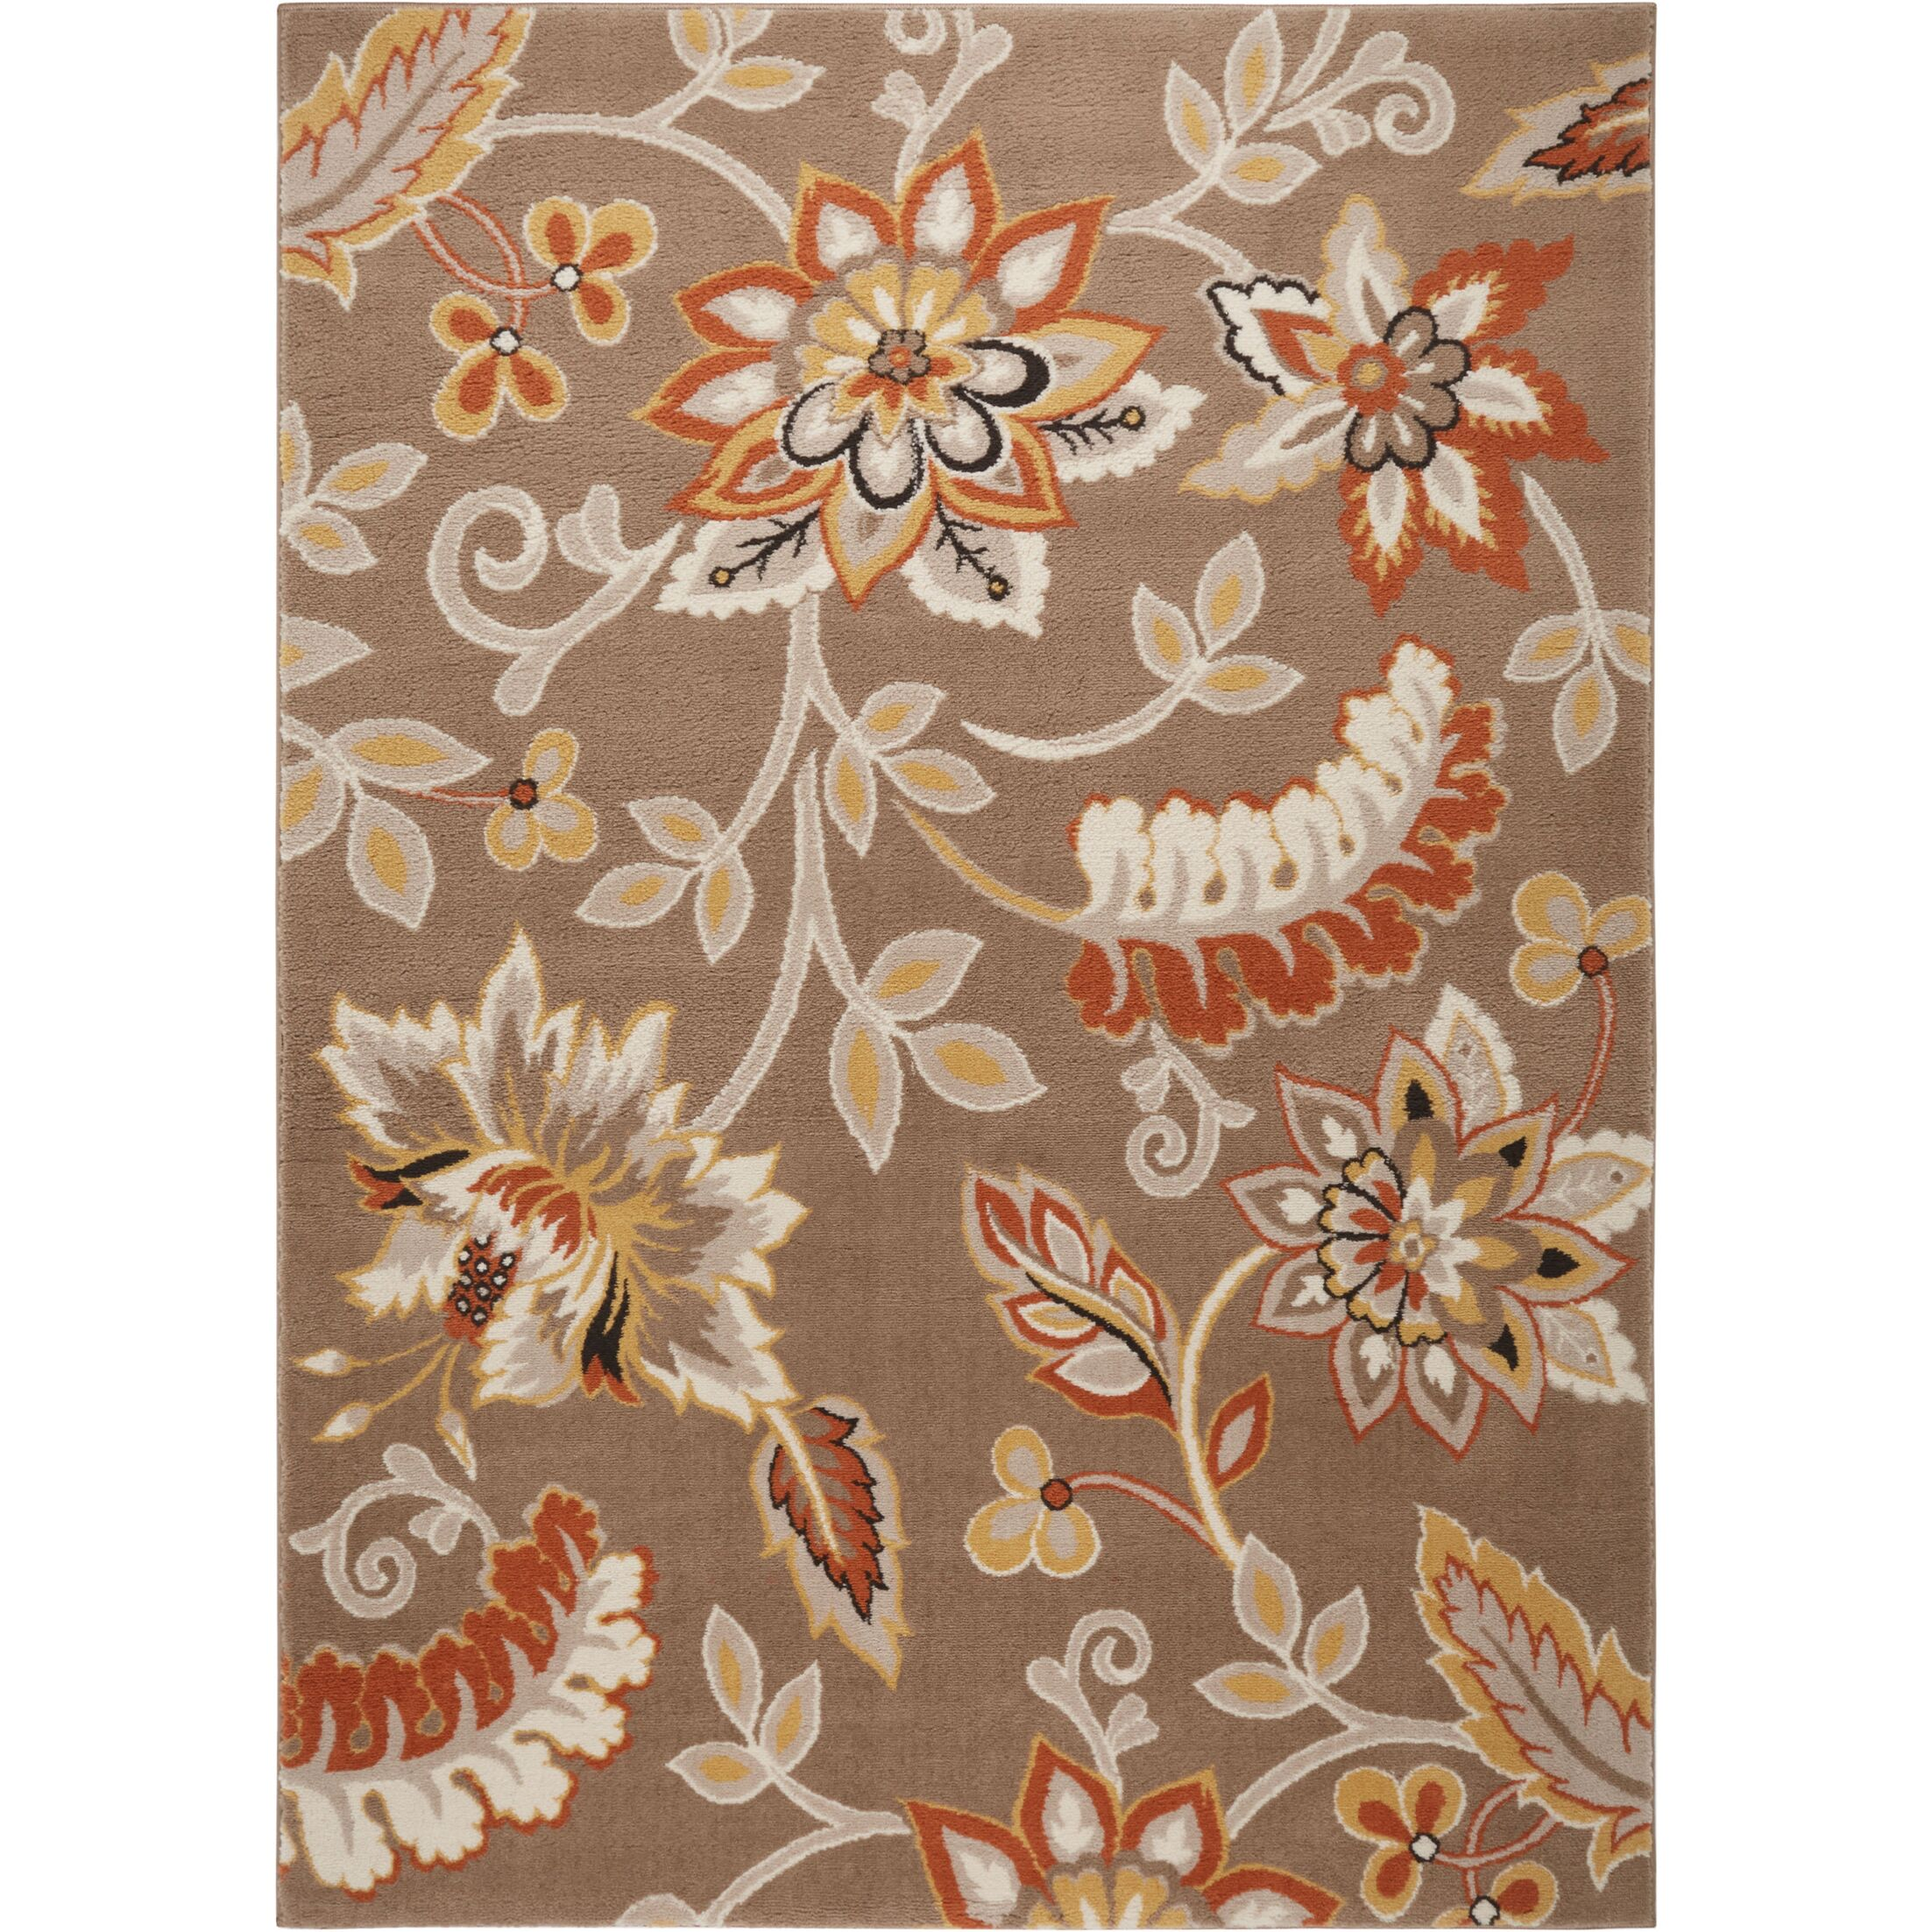 Selina Hand Tufted Brown Area Rug Rug Size: Rectangle 7'10